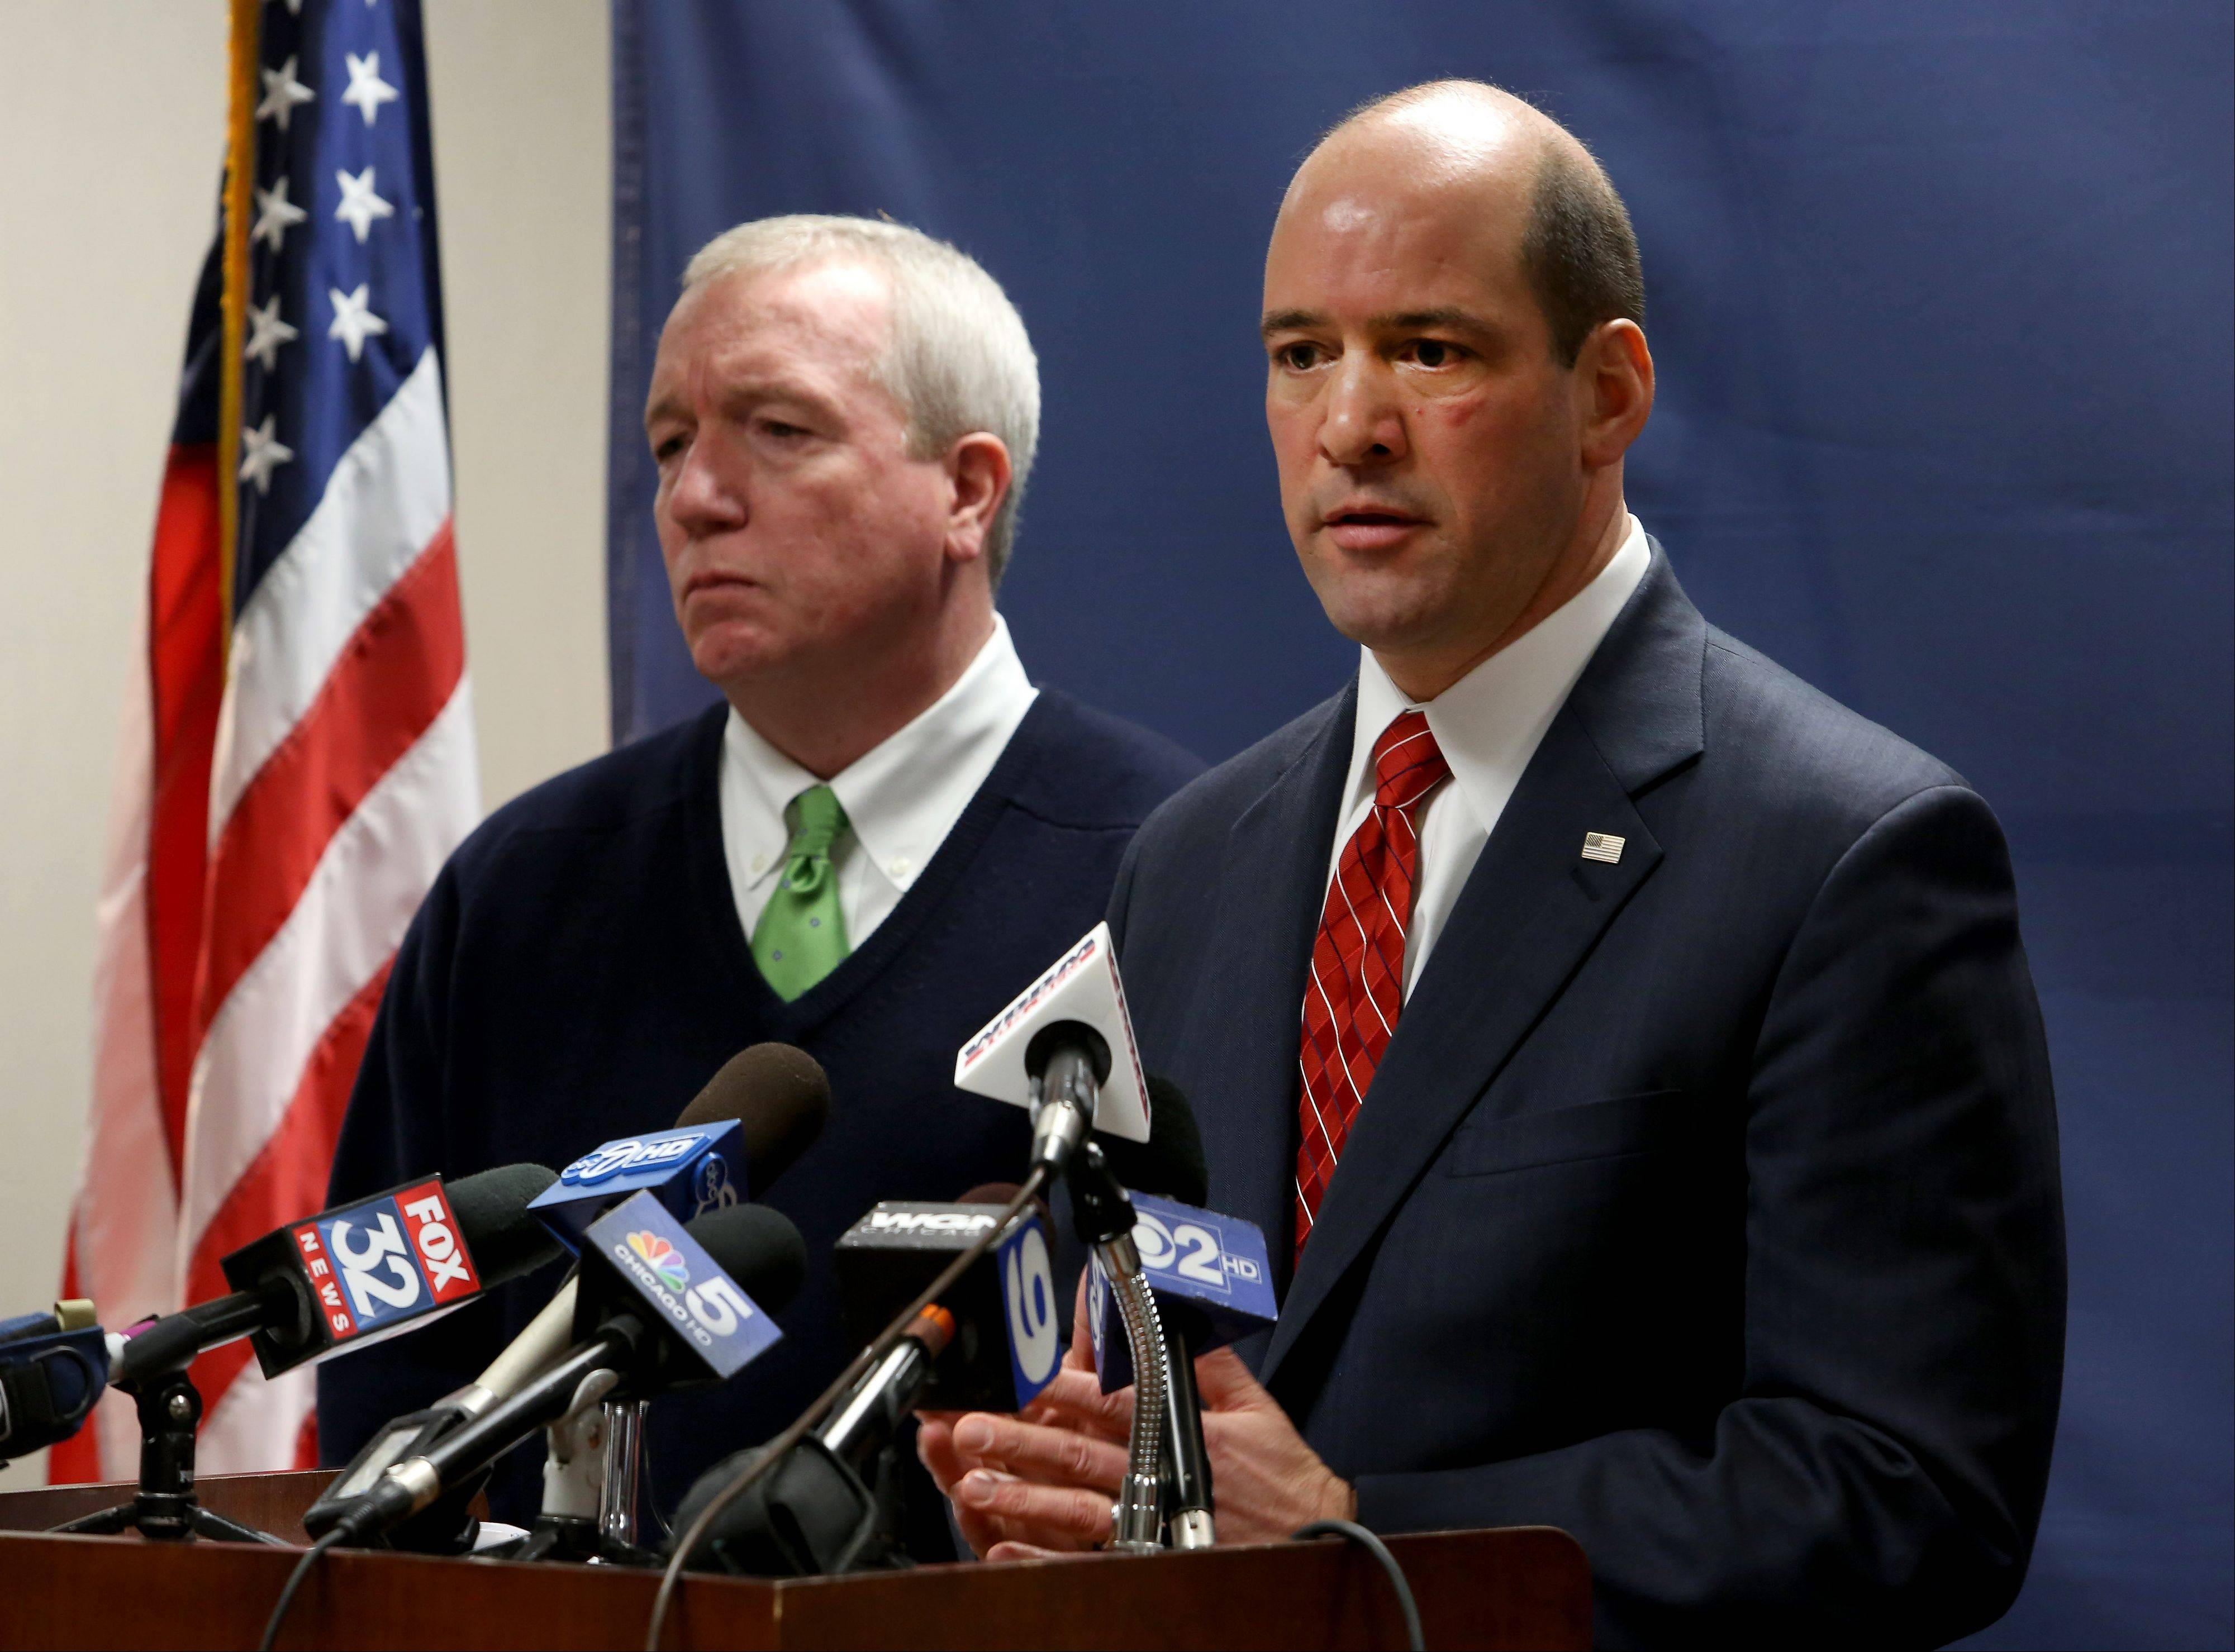 DuPage County State's Attorney Bob Berlin, right, with DEA Special Agent Jack Riley, announces criminal charges Thursday against three Schaumburg police officers accused of dealing drugs.